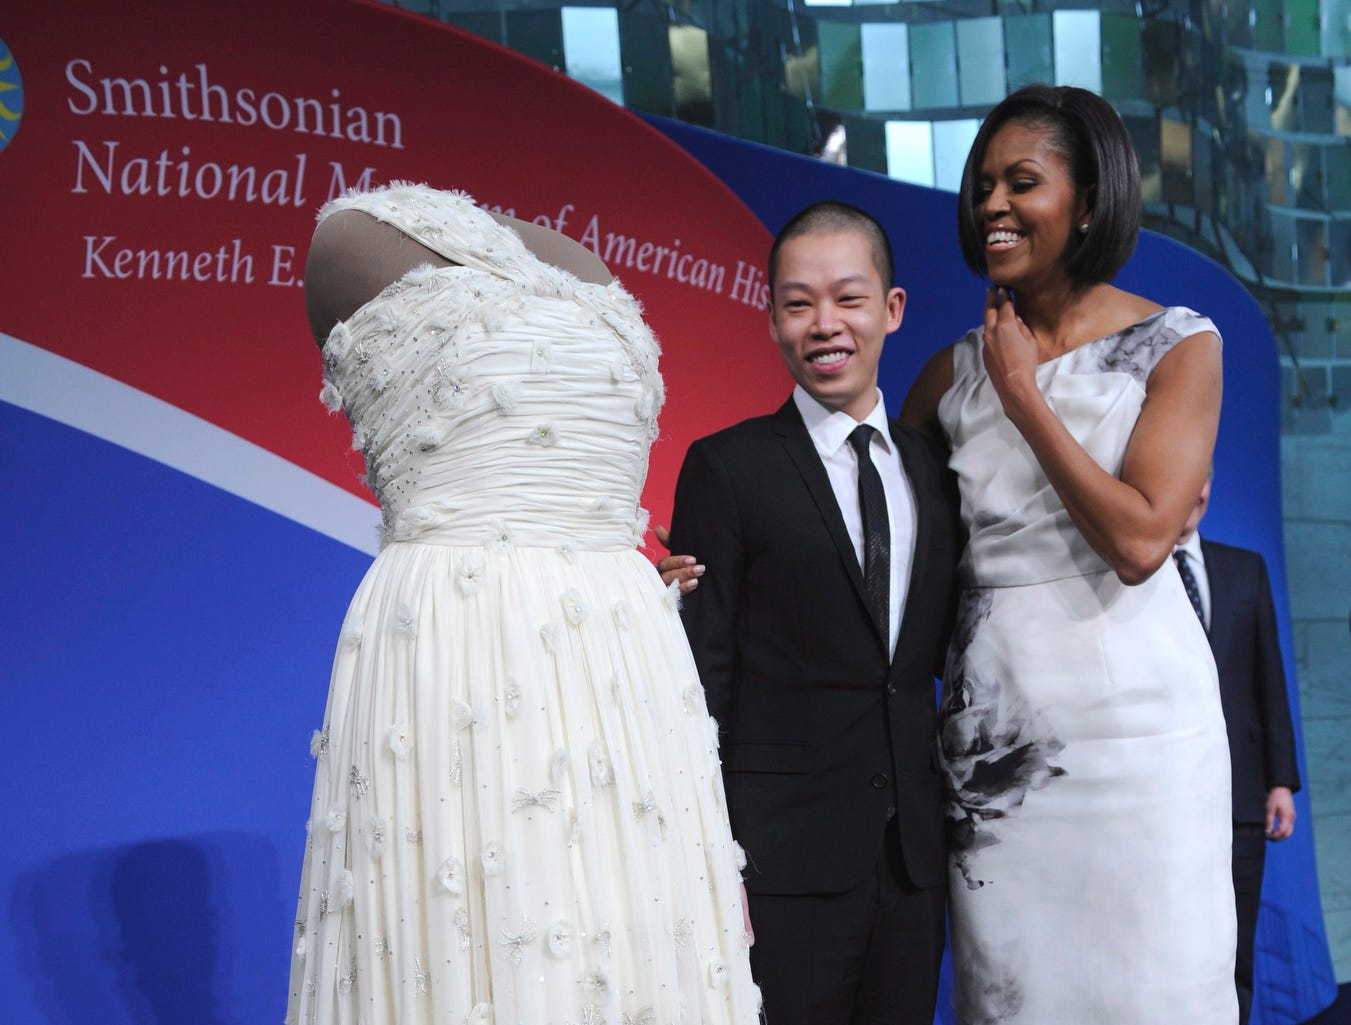 epa02072308 US First Lady Michelle Obama (R) and gown designer Jason Wu pose with the First Lady's inaugural gown during a ceremony to donate it to the Smithsonian National Museum of American History in Washington, DC USA 09 March 2010. The gown, designed by Jason Wu, joins the museum's collection of First Ladies gowns in a new gallery.  EPA/SHAWN THEW ORG XMIT: STX03